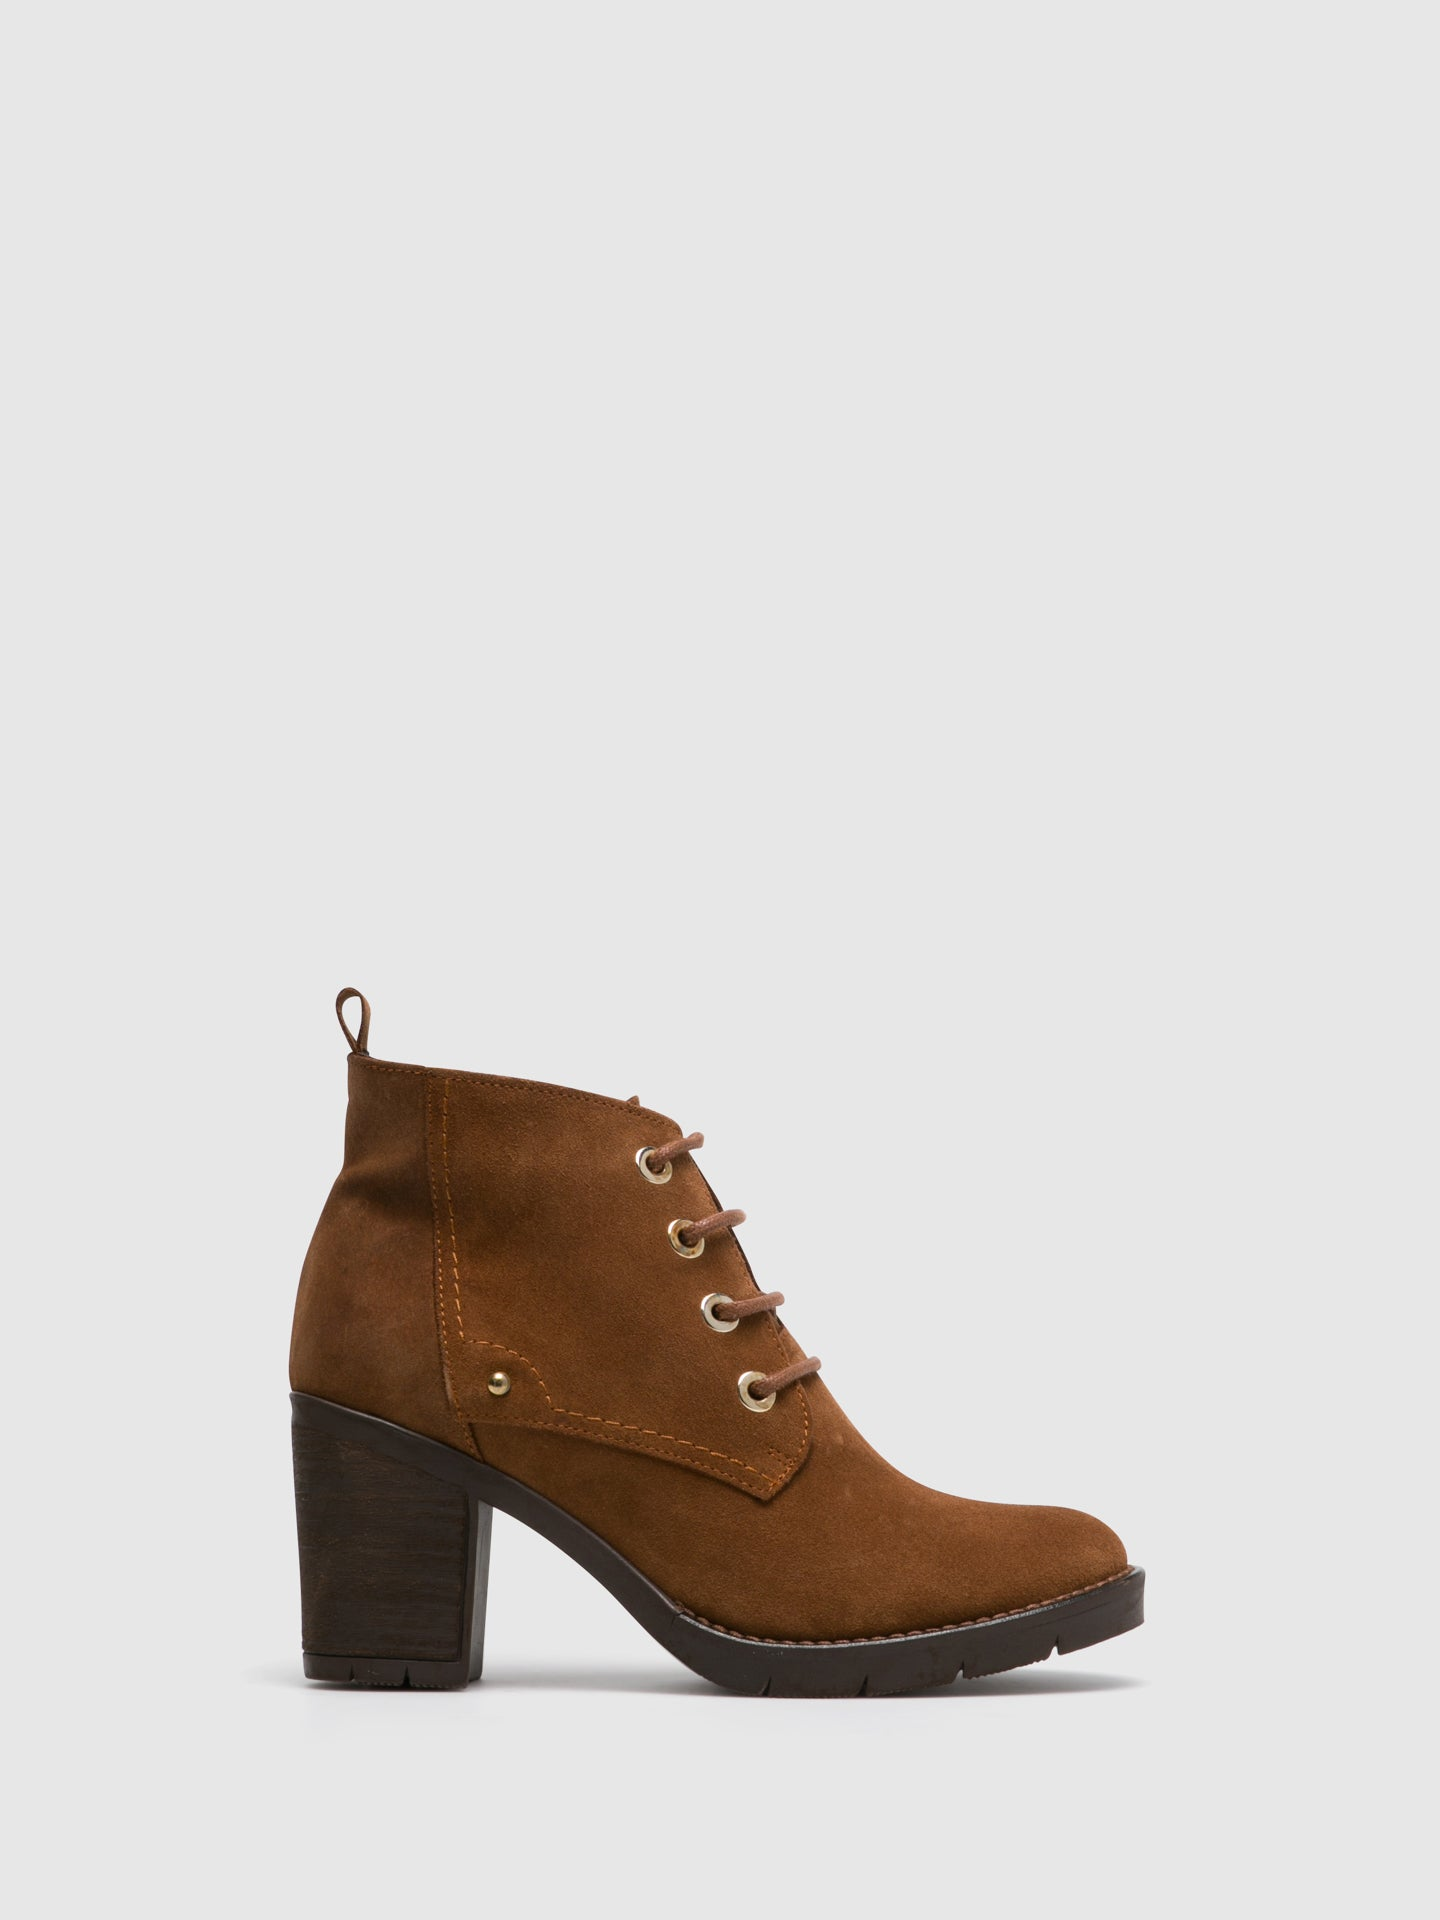 Foreva Peru Lace-up Ankle Boots